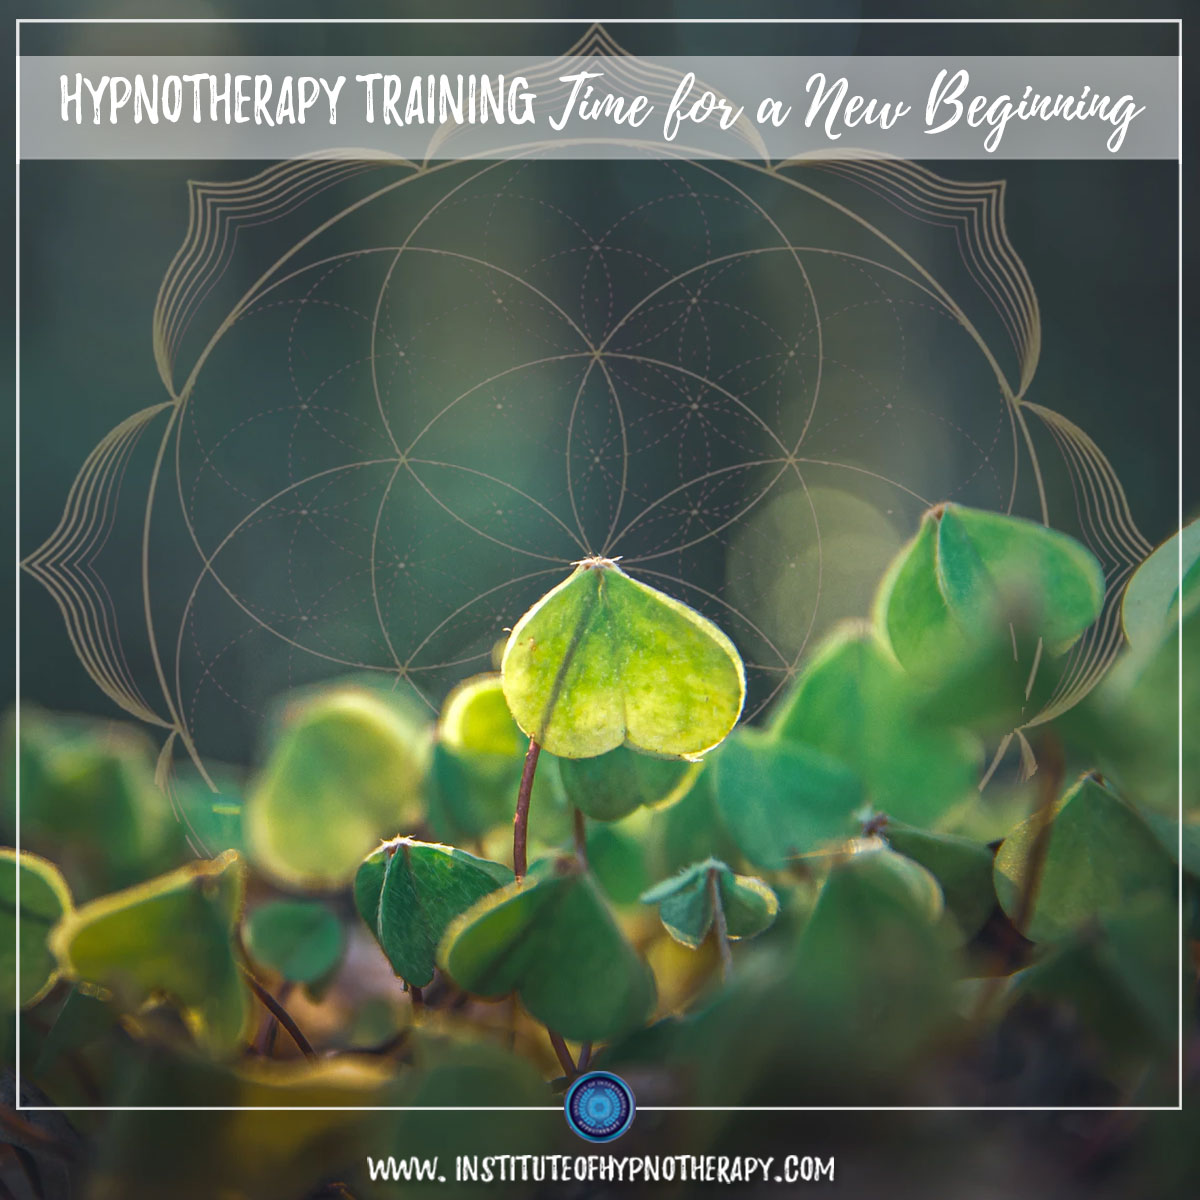 Hypnotherapy – Time for a New Beginning